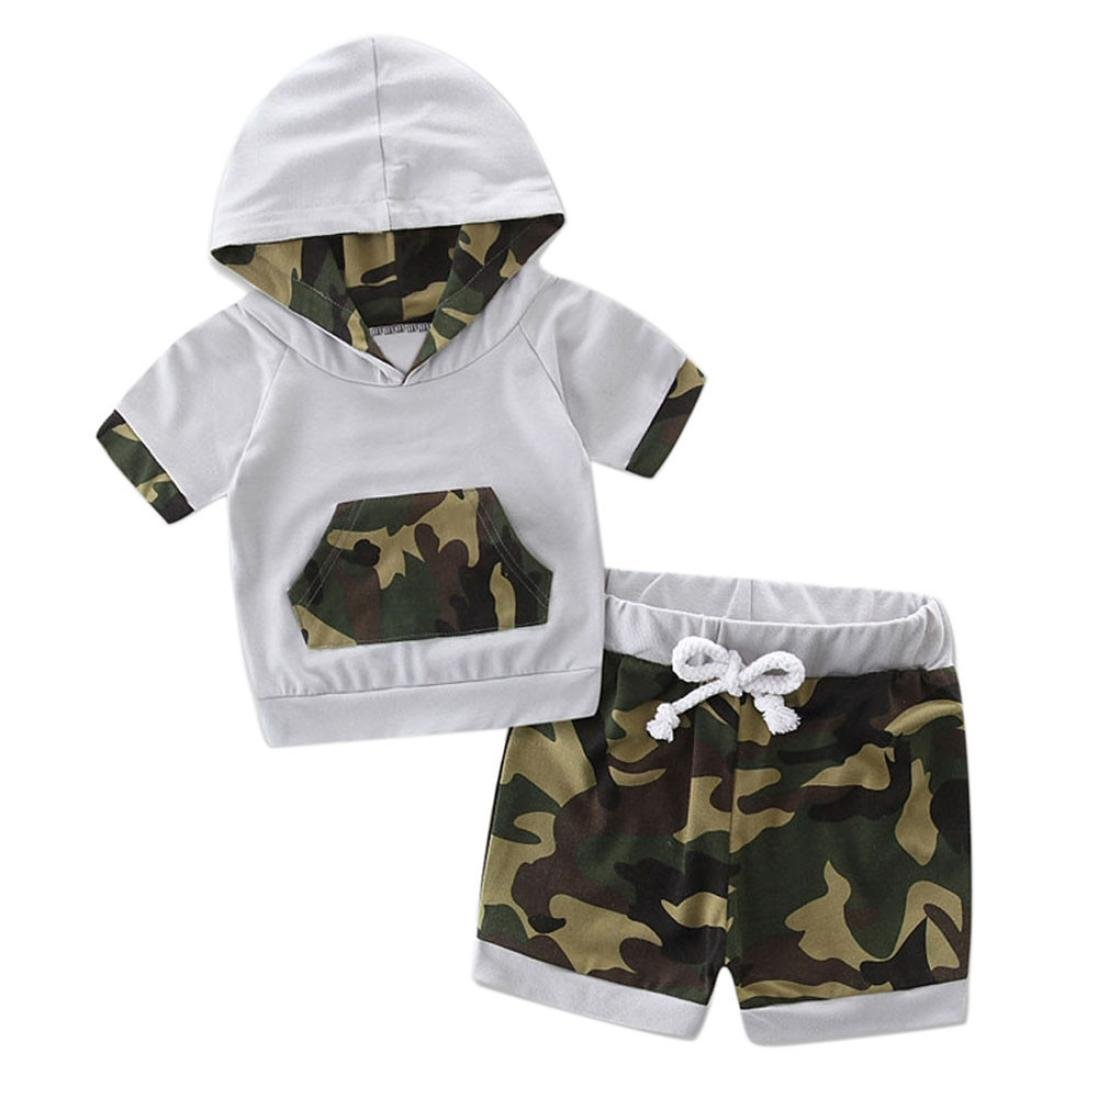 Baby Boys Summer Clothes, HEHEM Toddler Baby Hooded Camouflage Splice Tracksuit Tops +Shorts Pants Outfits Set (6-24 month) (3-6 month, Camouflage) Fashion Small fresh Feminine charm Animals